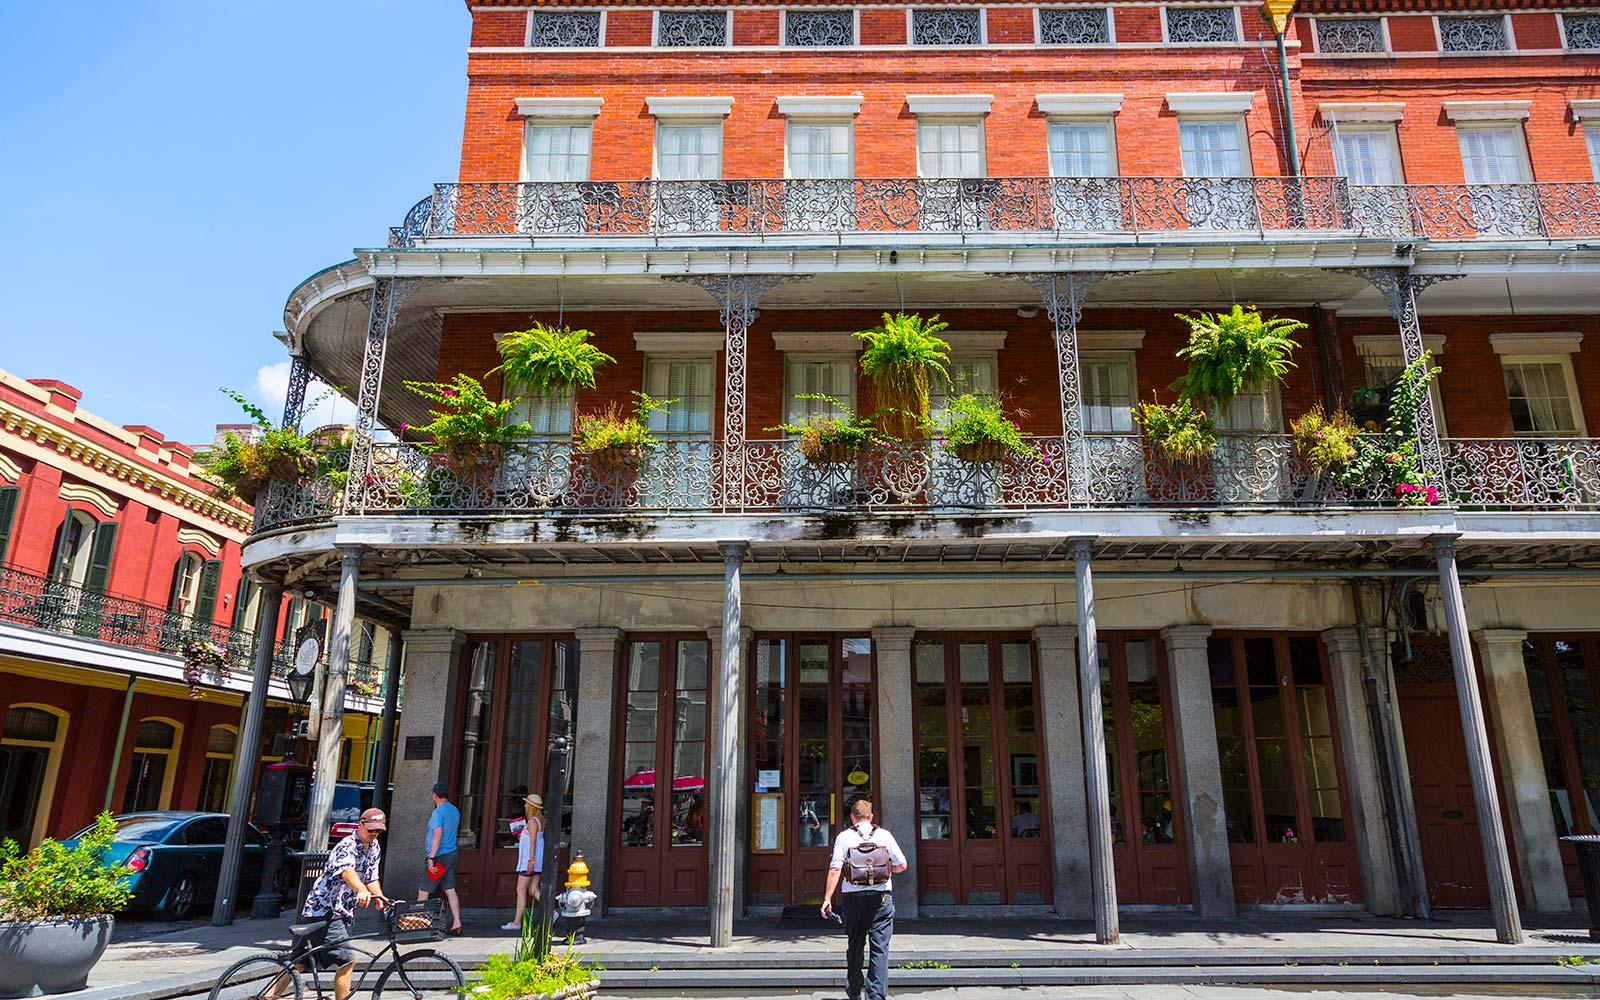 French Quarter, New Orleans, and its French Colonial architecture